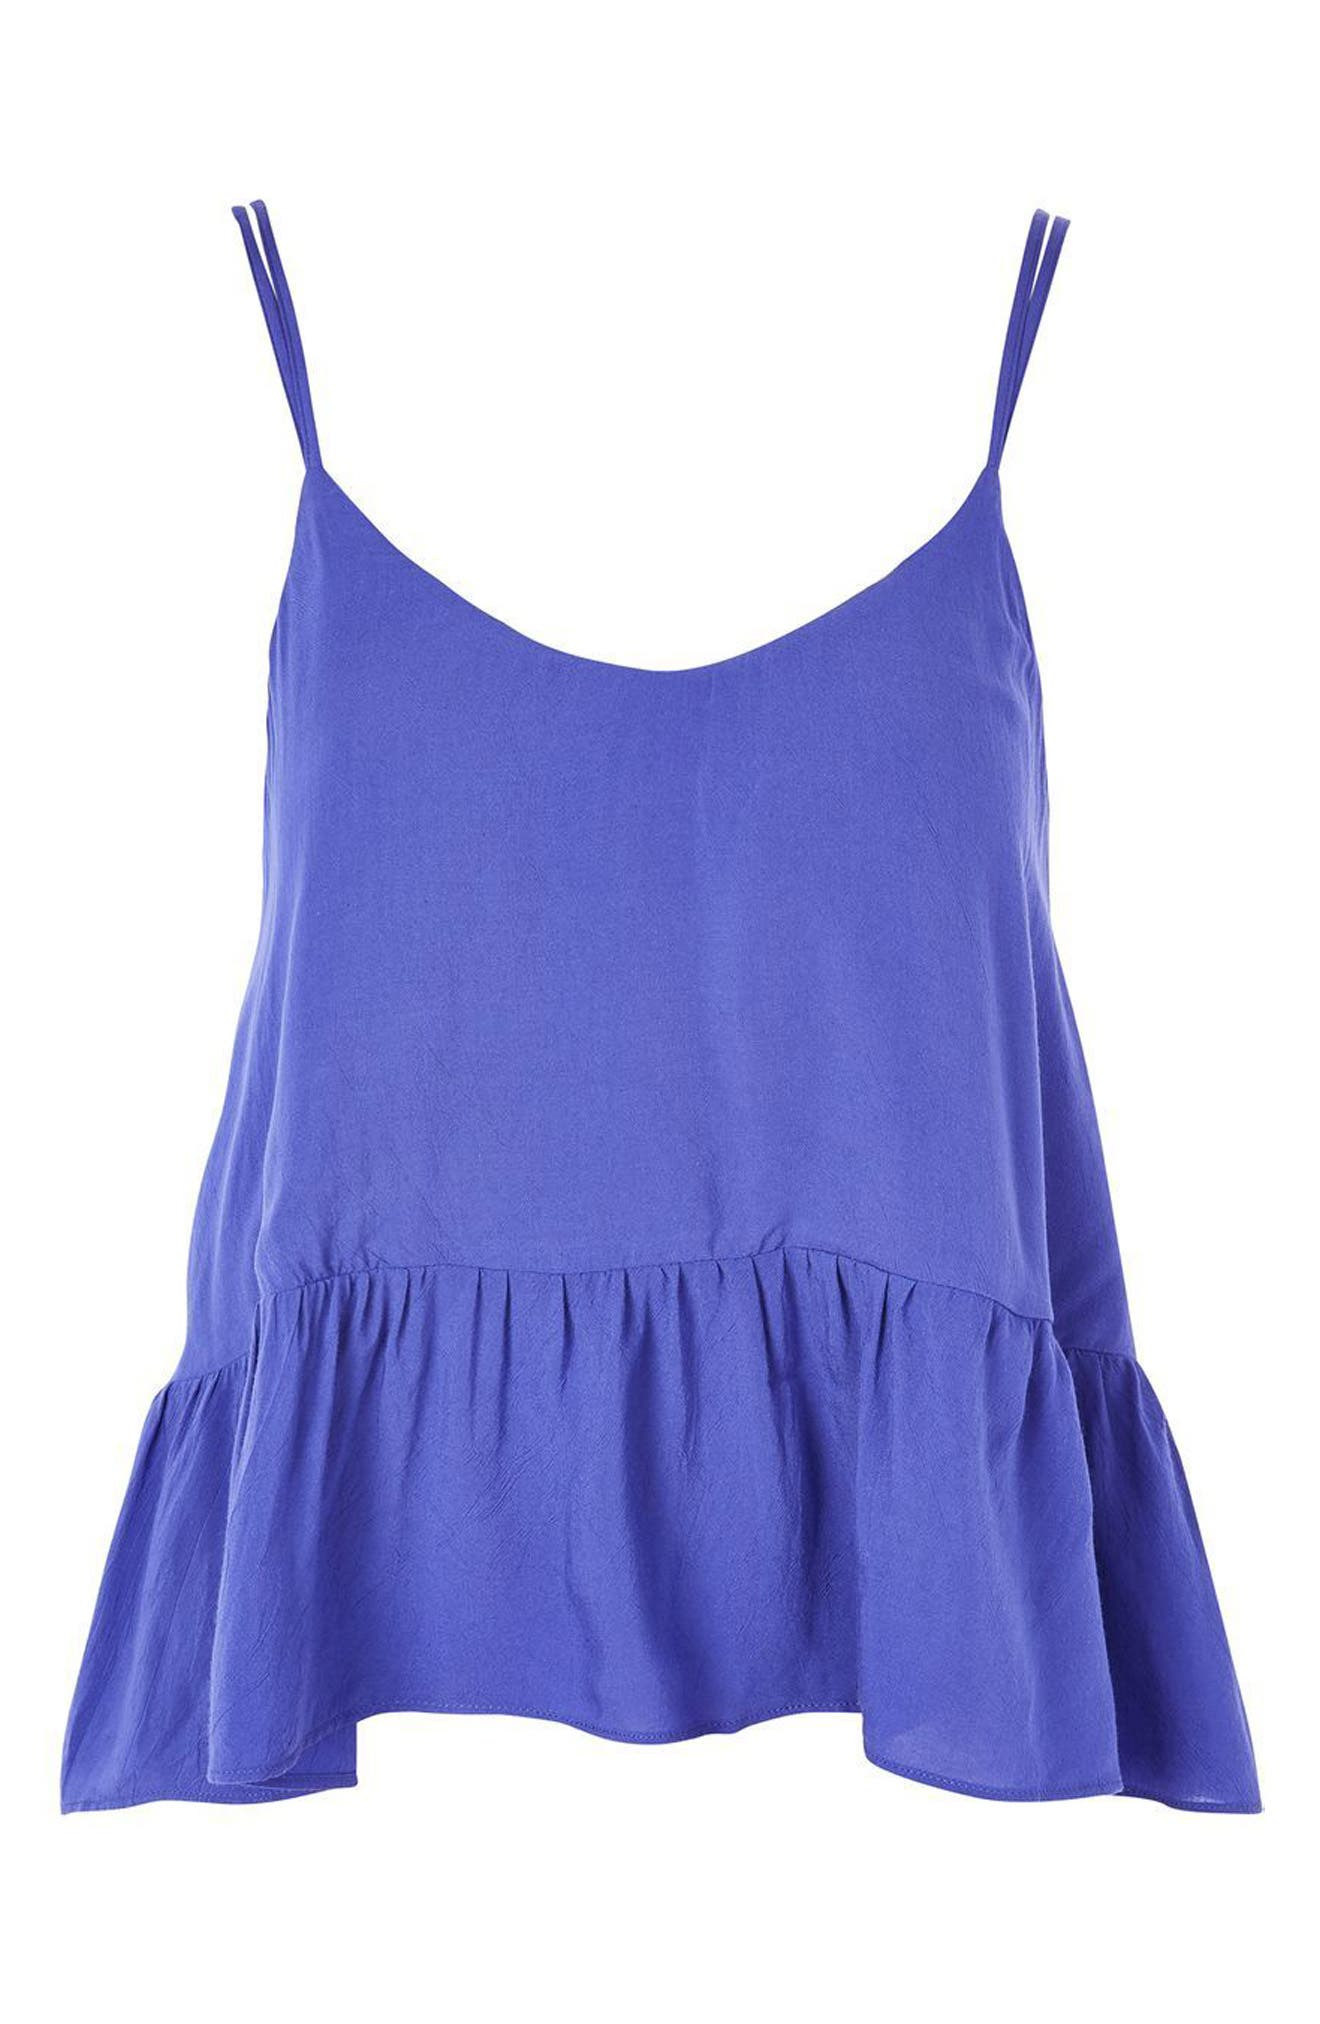 Alternate Image 3  - Topshop Peplum Camisole (Regular & Petite)